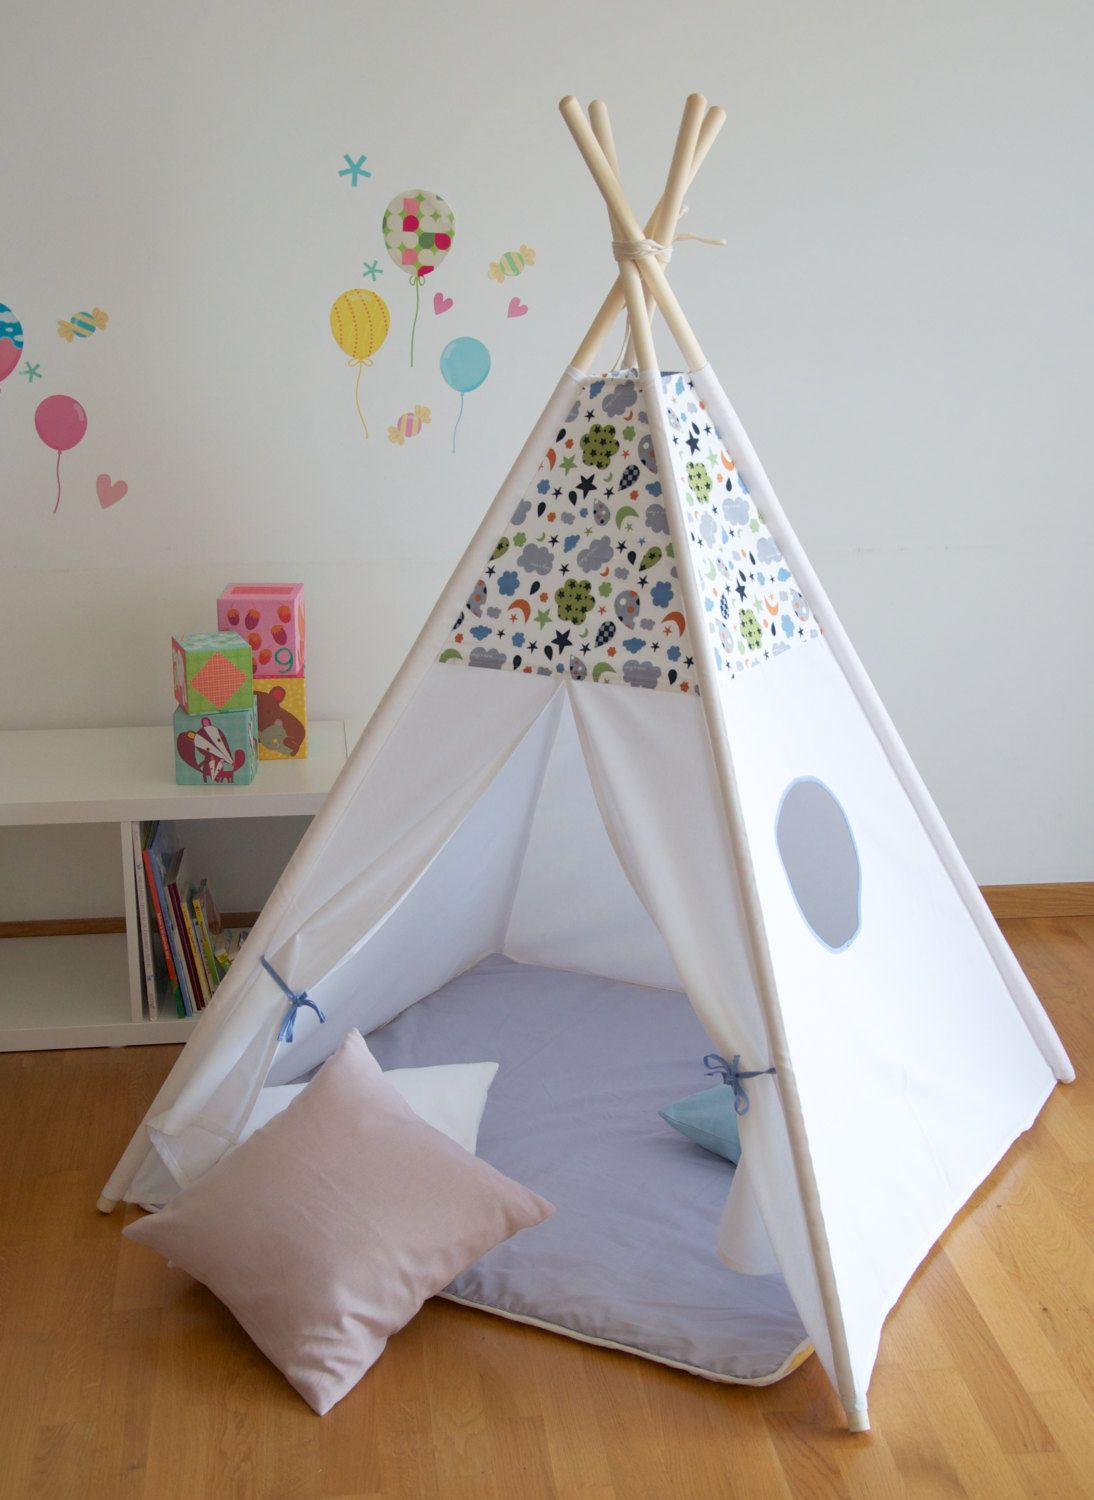 Grey clouds and stars kids teepee play tent with a padded floor mat by WigiWama on & Grey clouds and stars kids teepee play tent with a padded floor mat ...